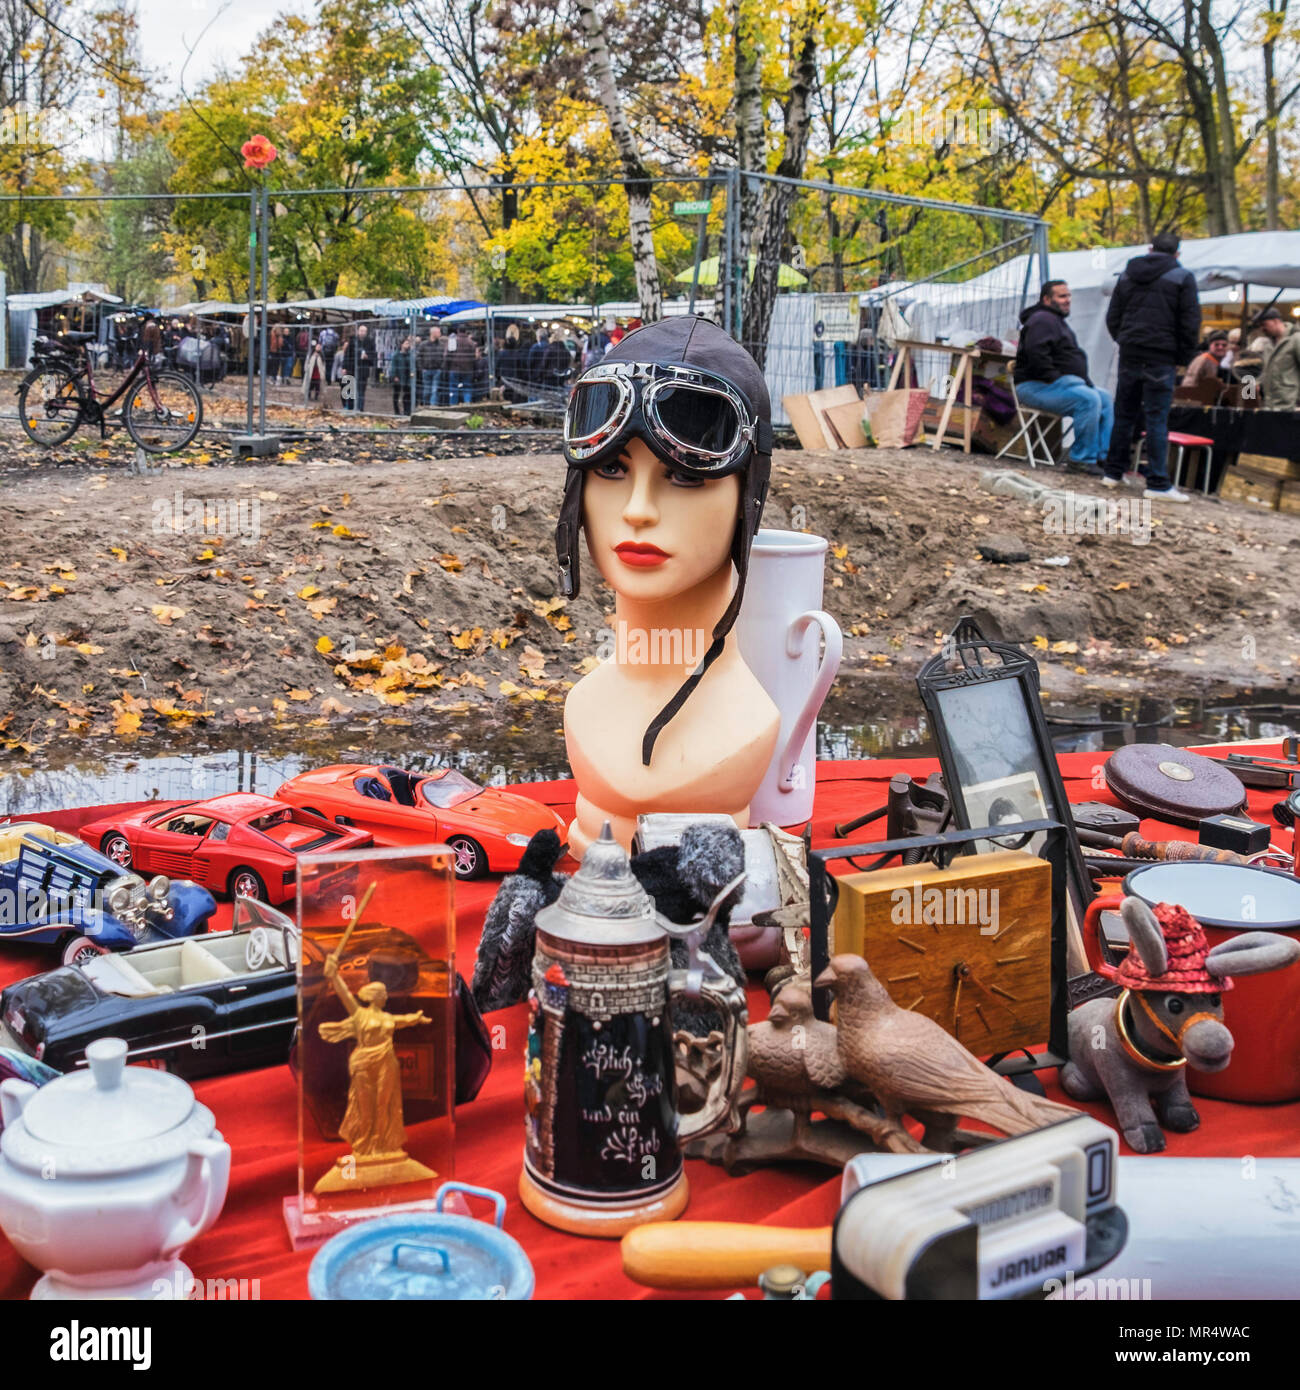 Berlin Prenzlauer Berg.Mauerpark Fleamarket.Rains & poor drainage of market area cause problems for stall holders,Stall with mannequin head & goggles - Stock Image